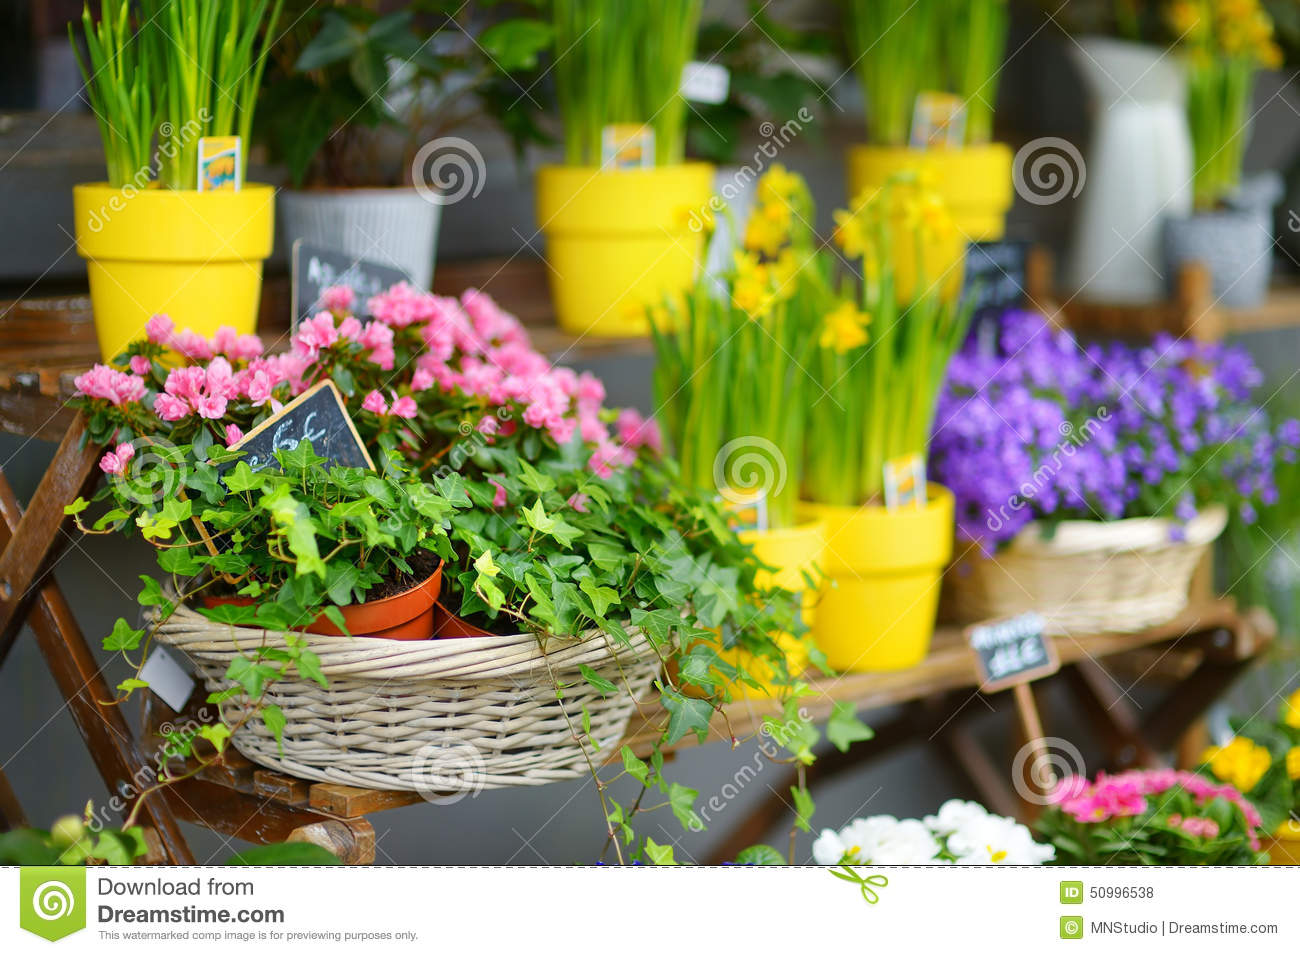 Beautiful flowers sold on outdoor flower shop stock photo image of download beautiful flowers sold on outdoor flower shop stock photo image of fresh narciss izmirmasajfo